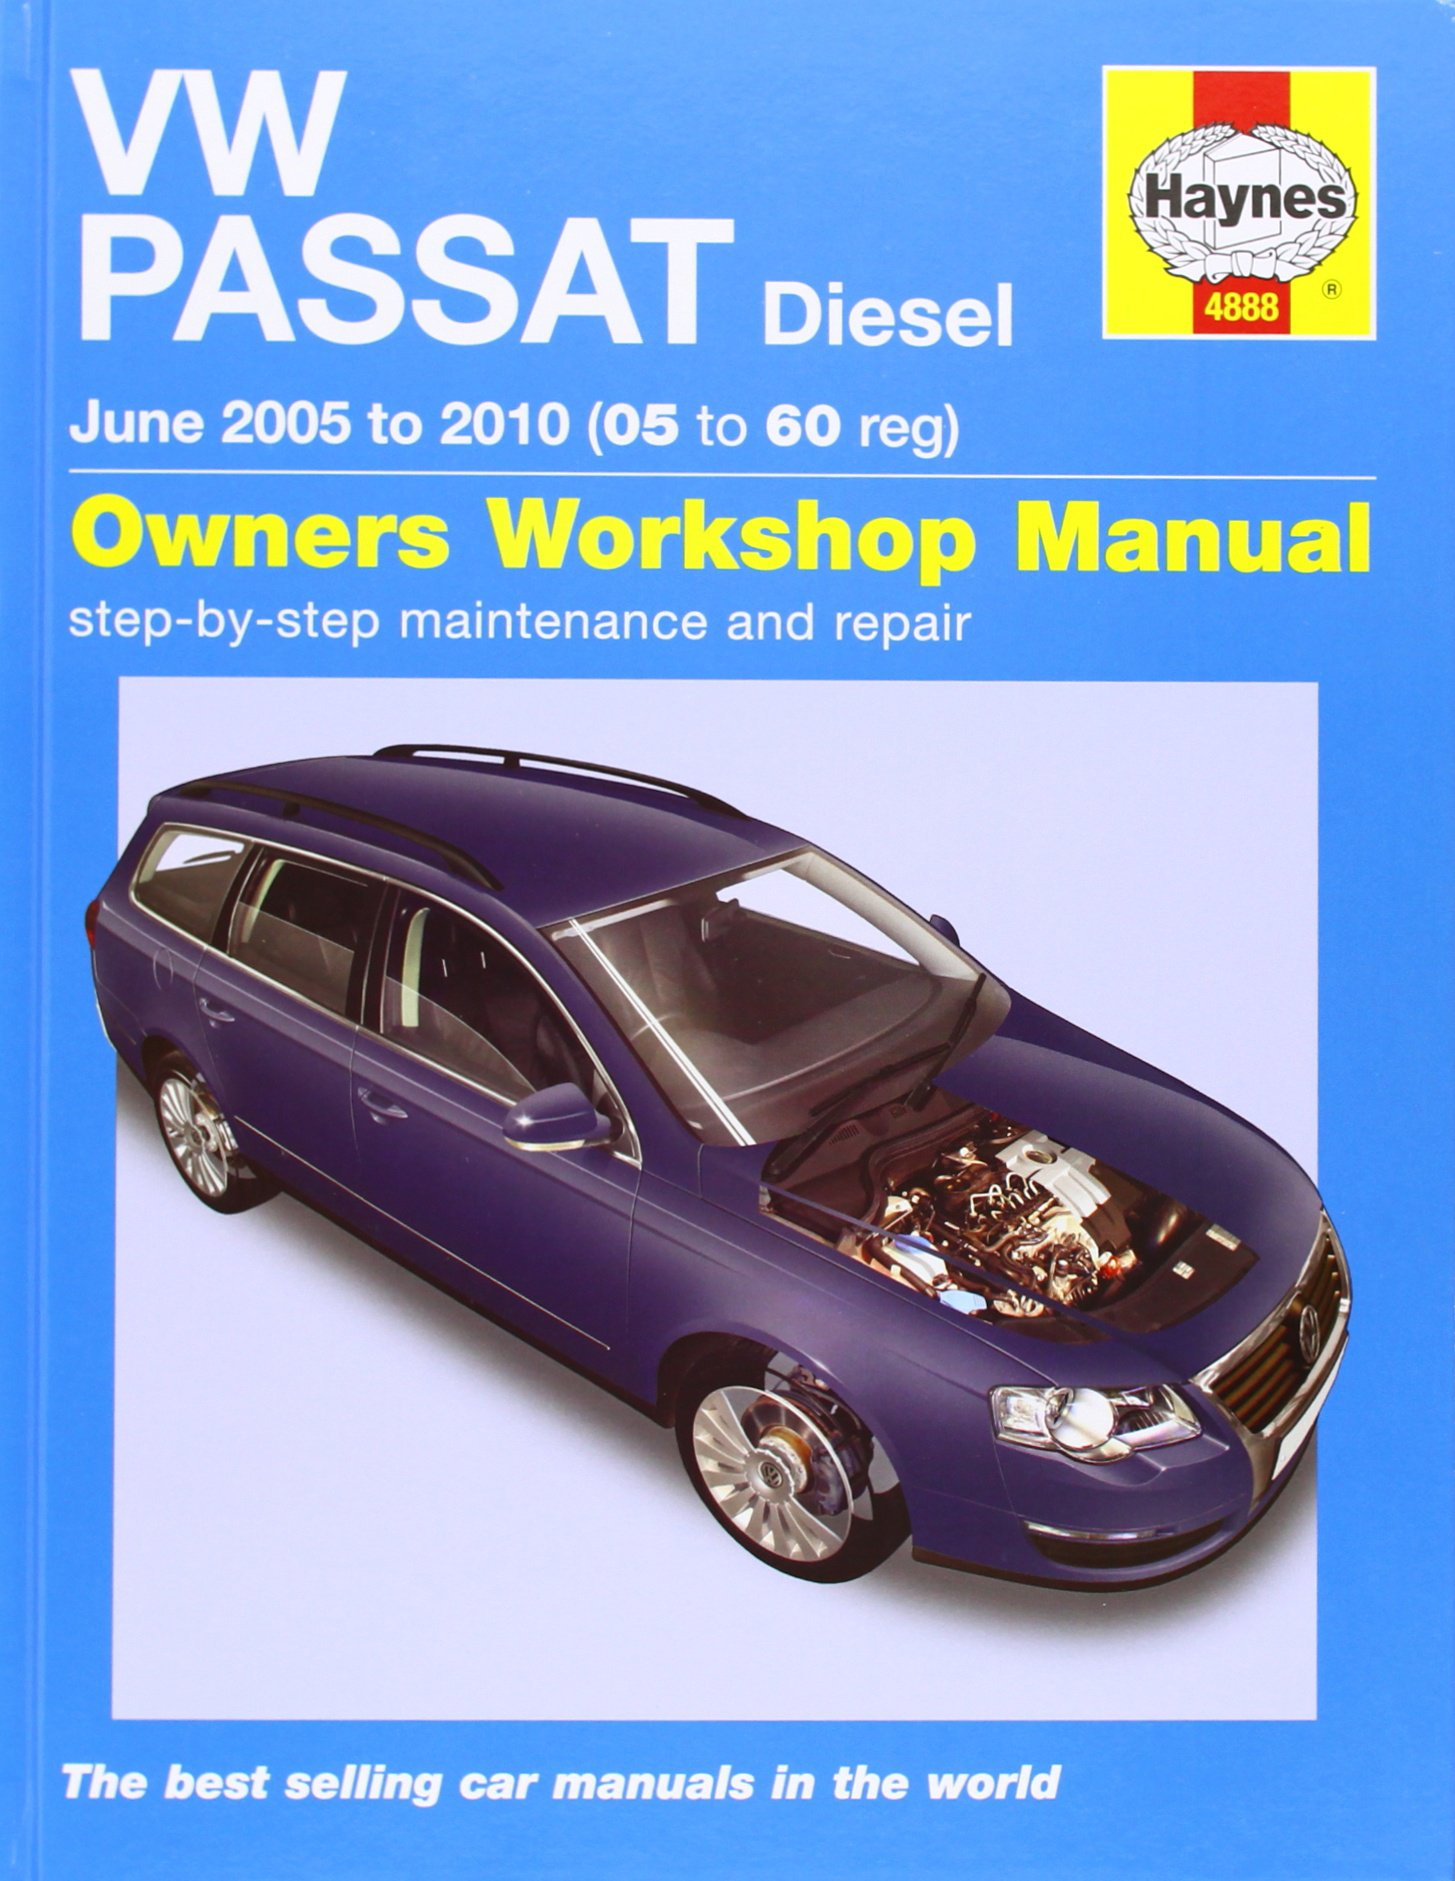 Jetta owners manual pdf.